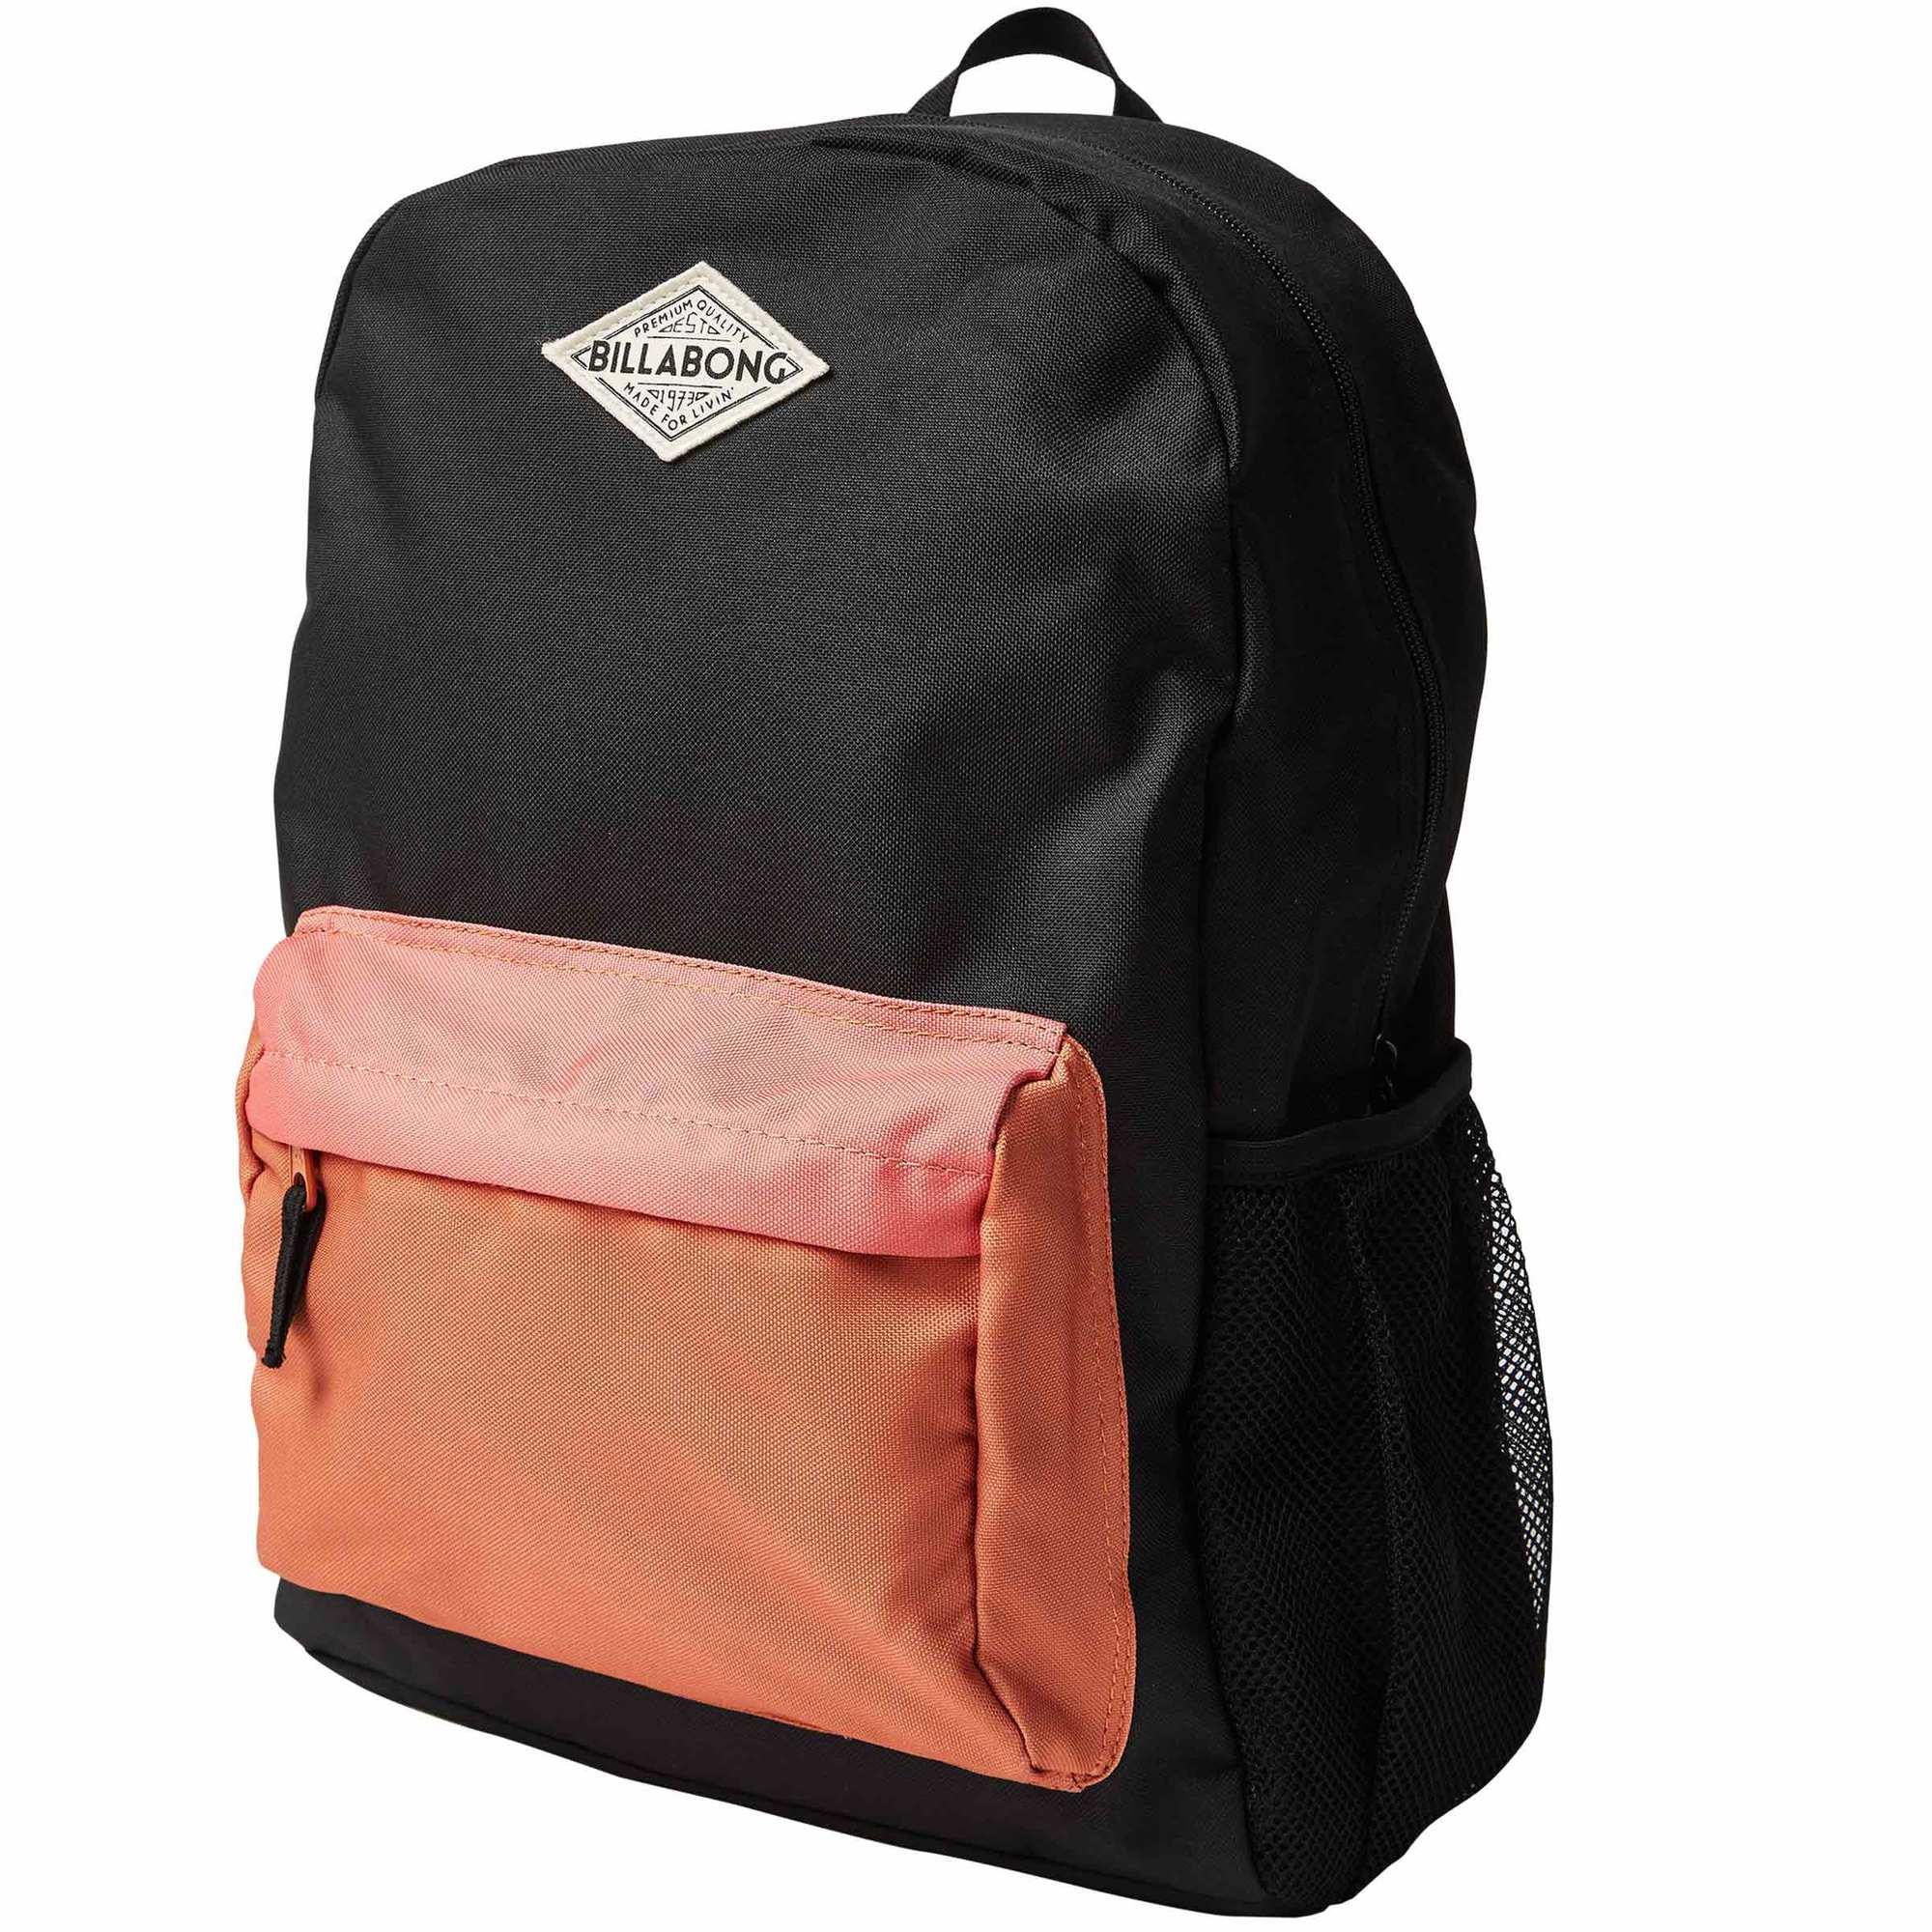 7e0cbcf257 Lyst - Billabong Schools Out Backpack